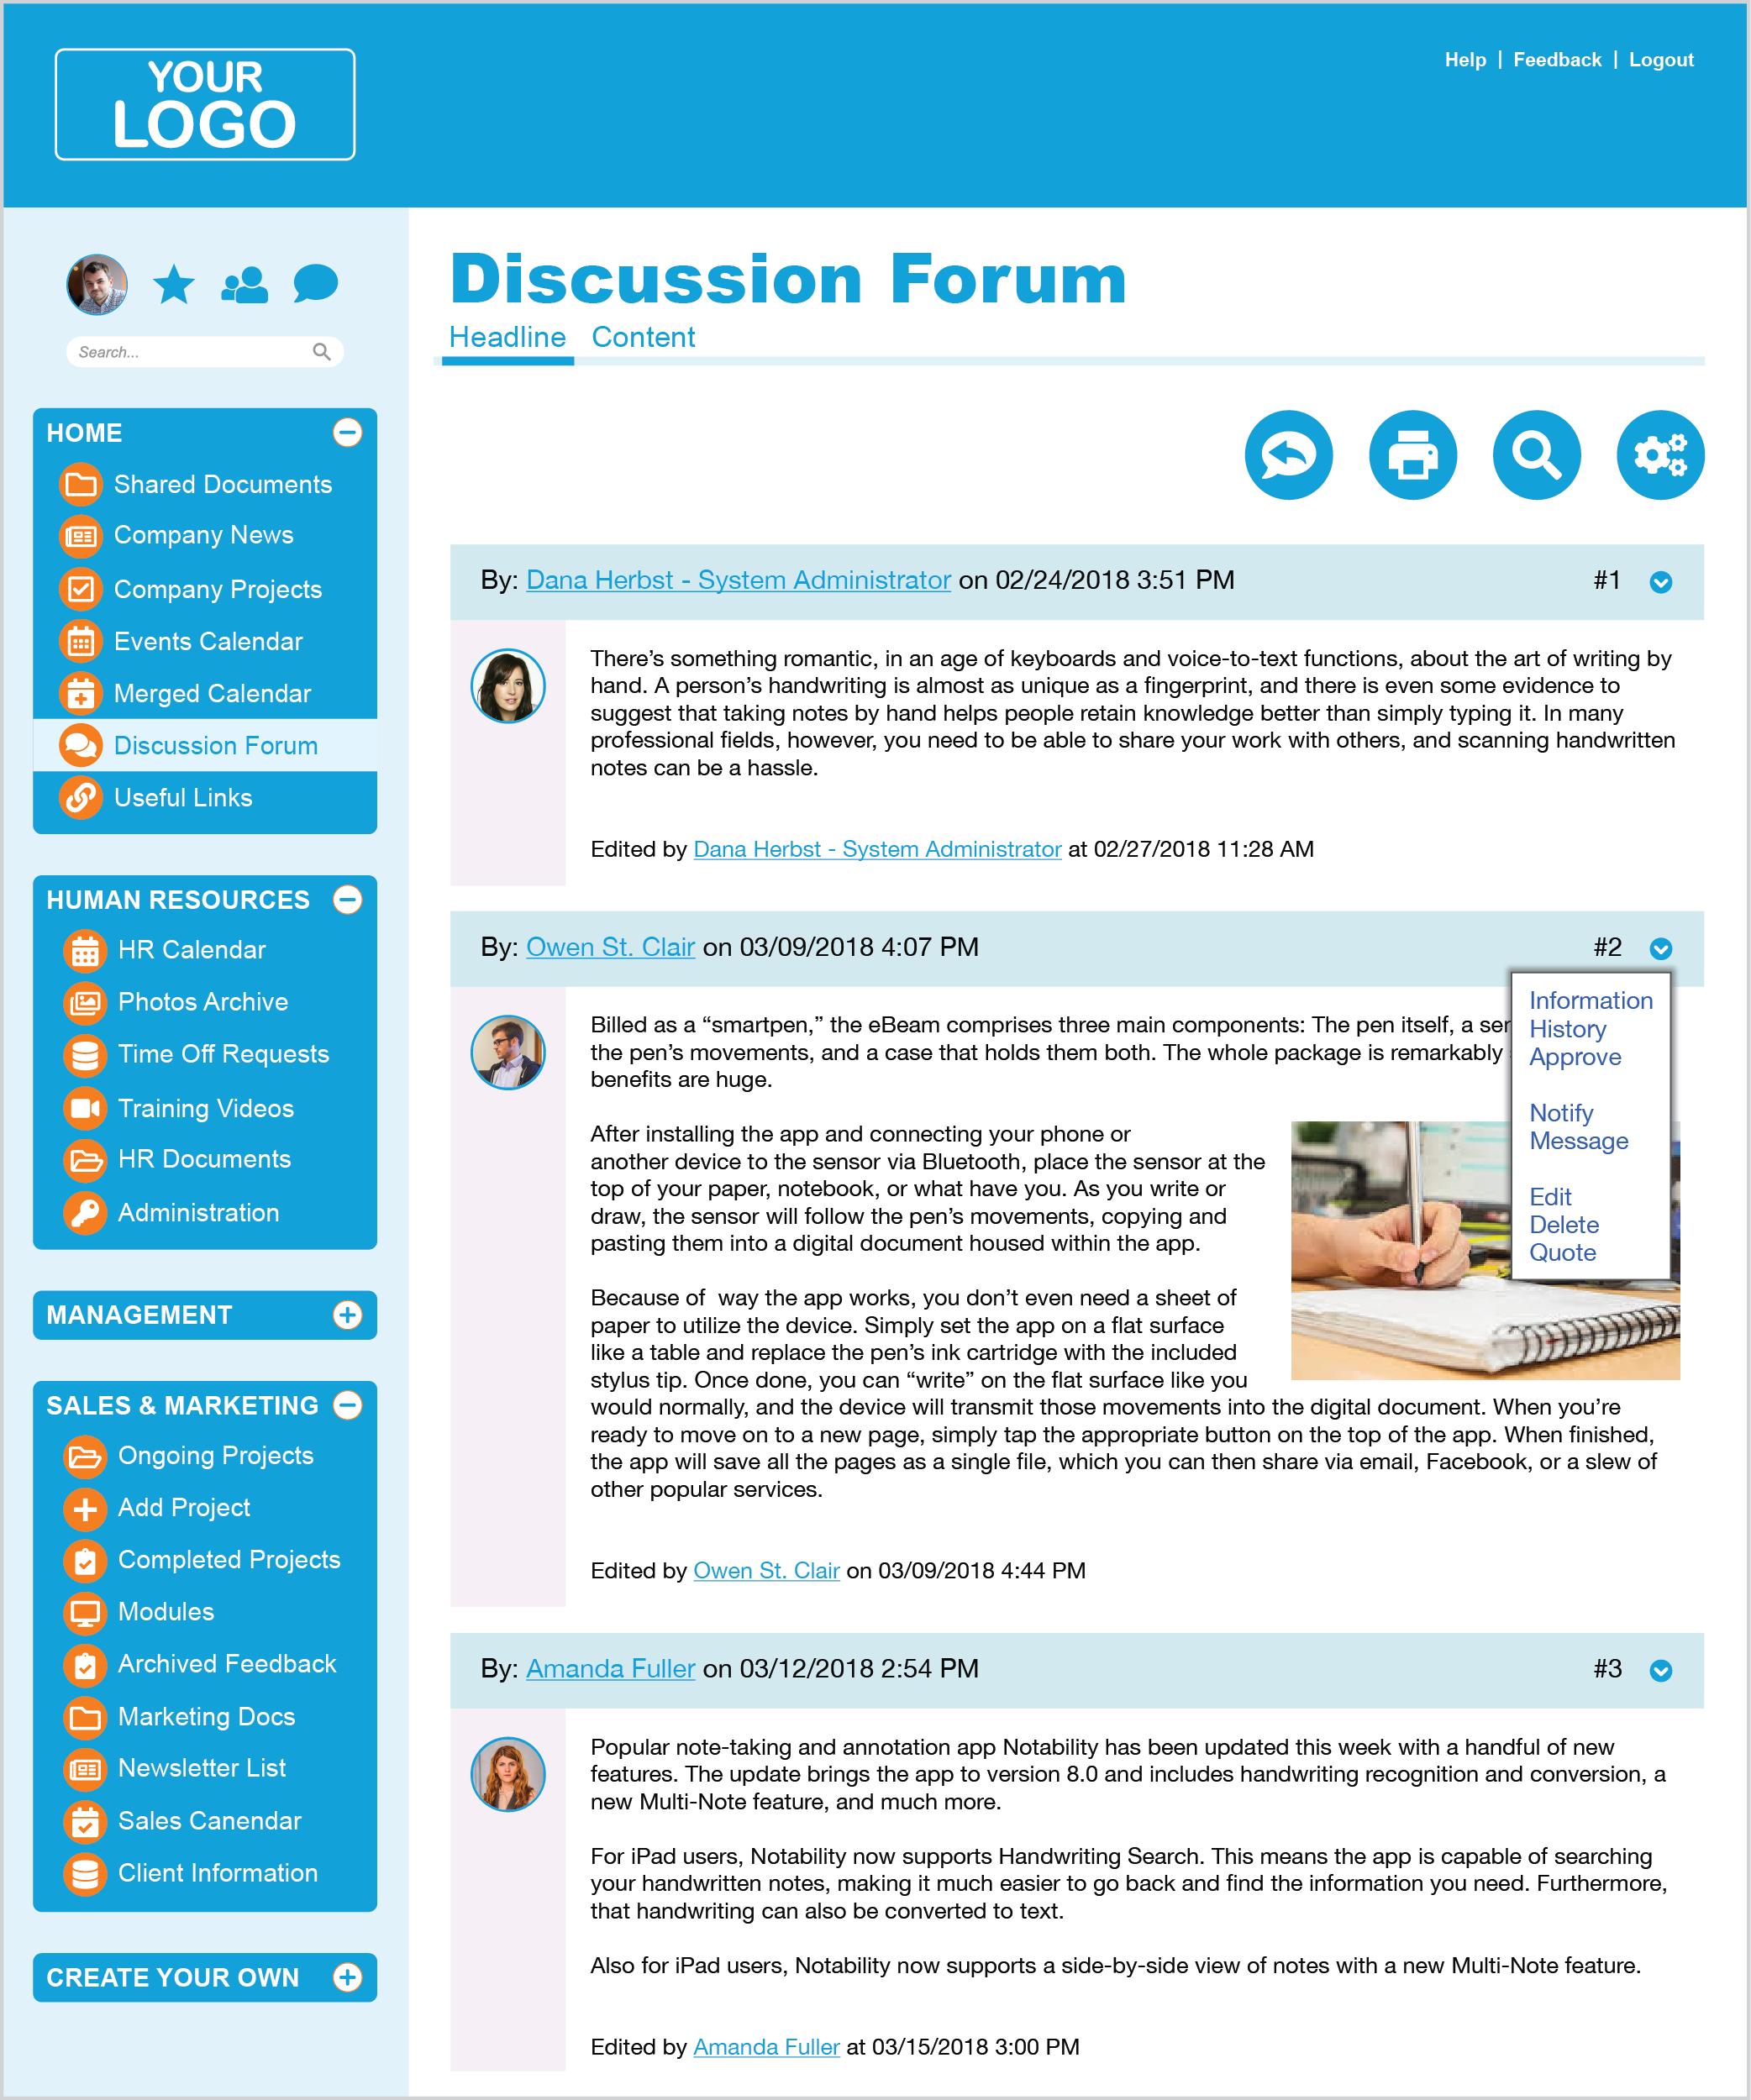 Intranet Discussion Forum